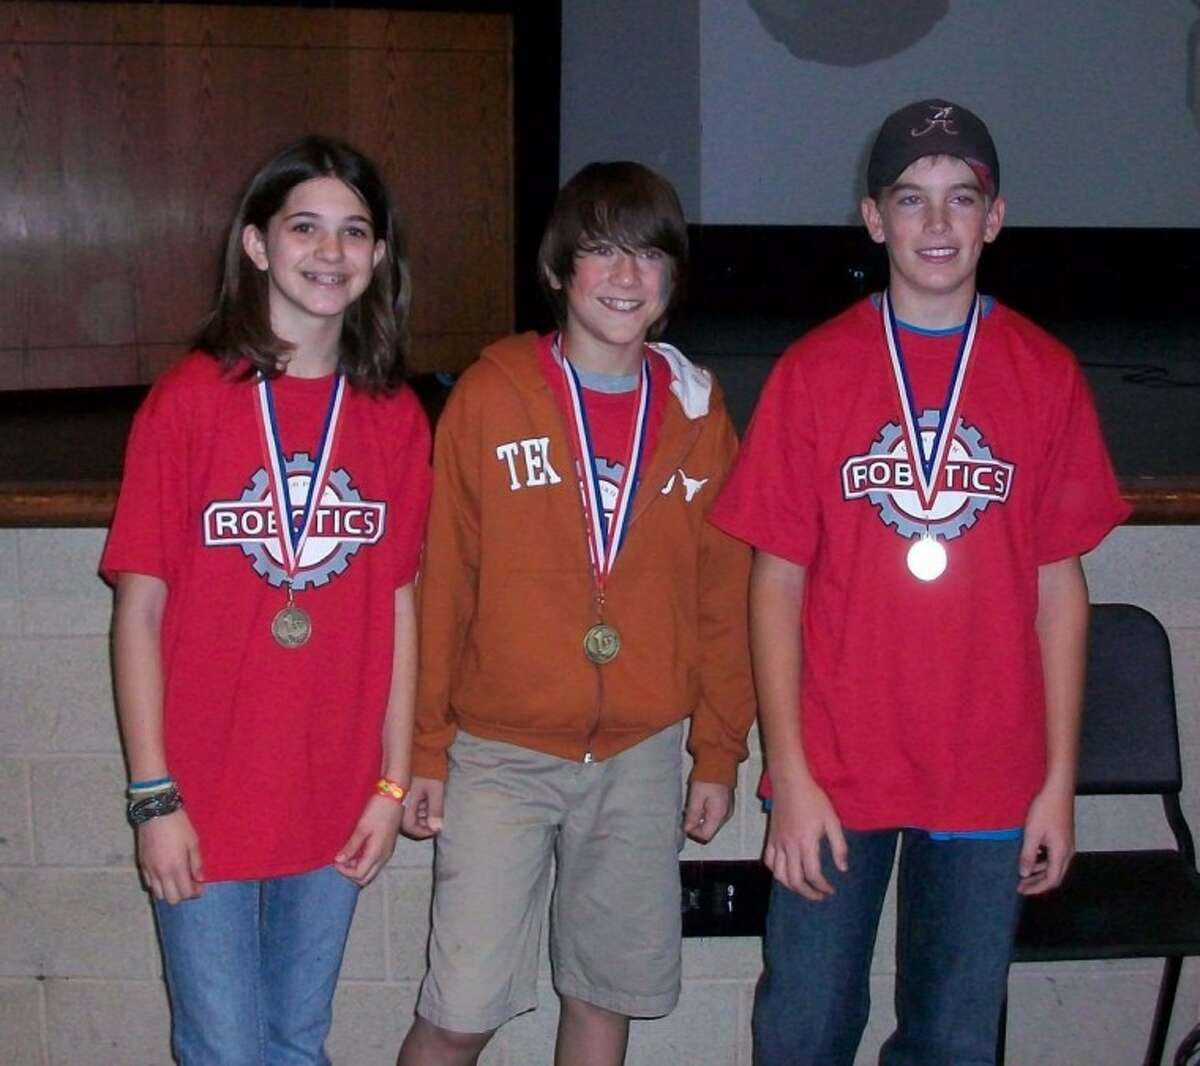 In District Robotics competition Dec. 4, Deer Park Junior High School's team of McKensie Robinson, Sammy Pennington, and Luke Wilson, won first place in the Arena competition. The team's sponsors are Leisa Davidson and Kay Guerrero.